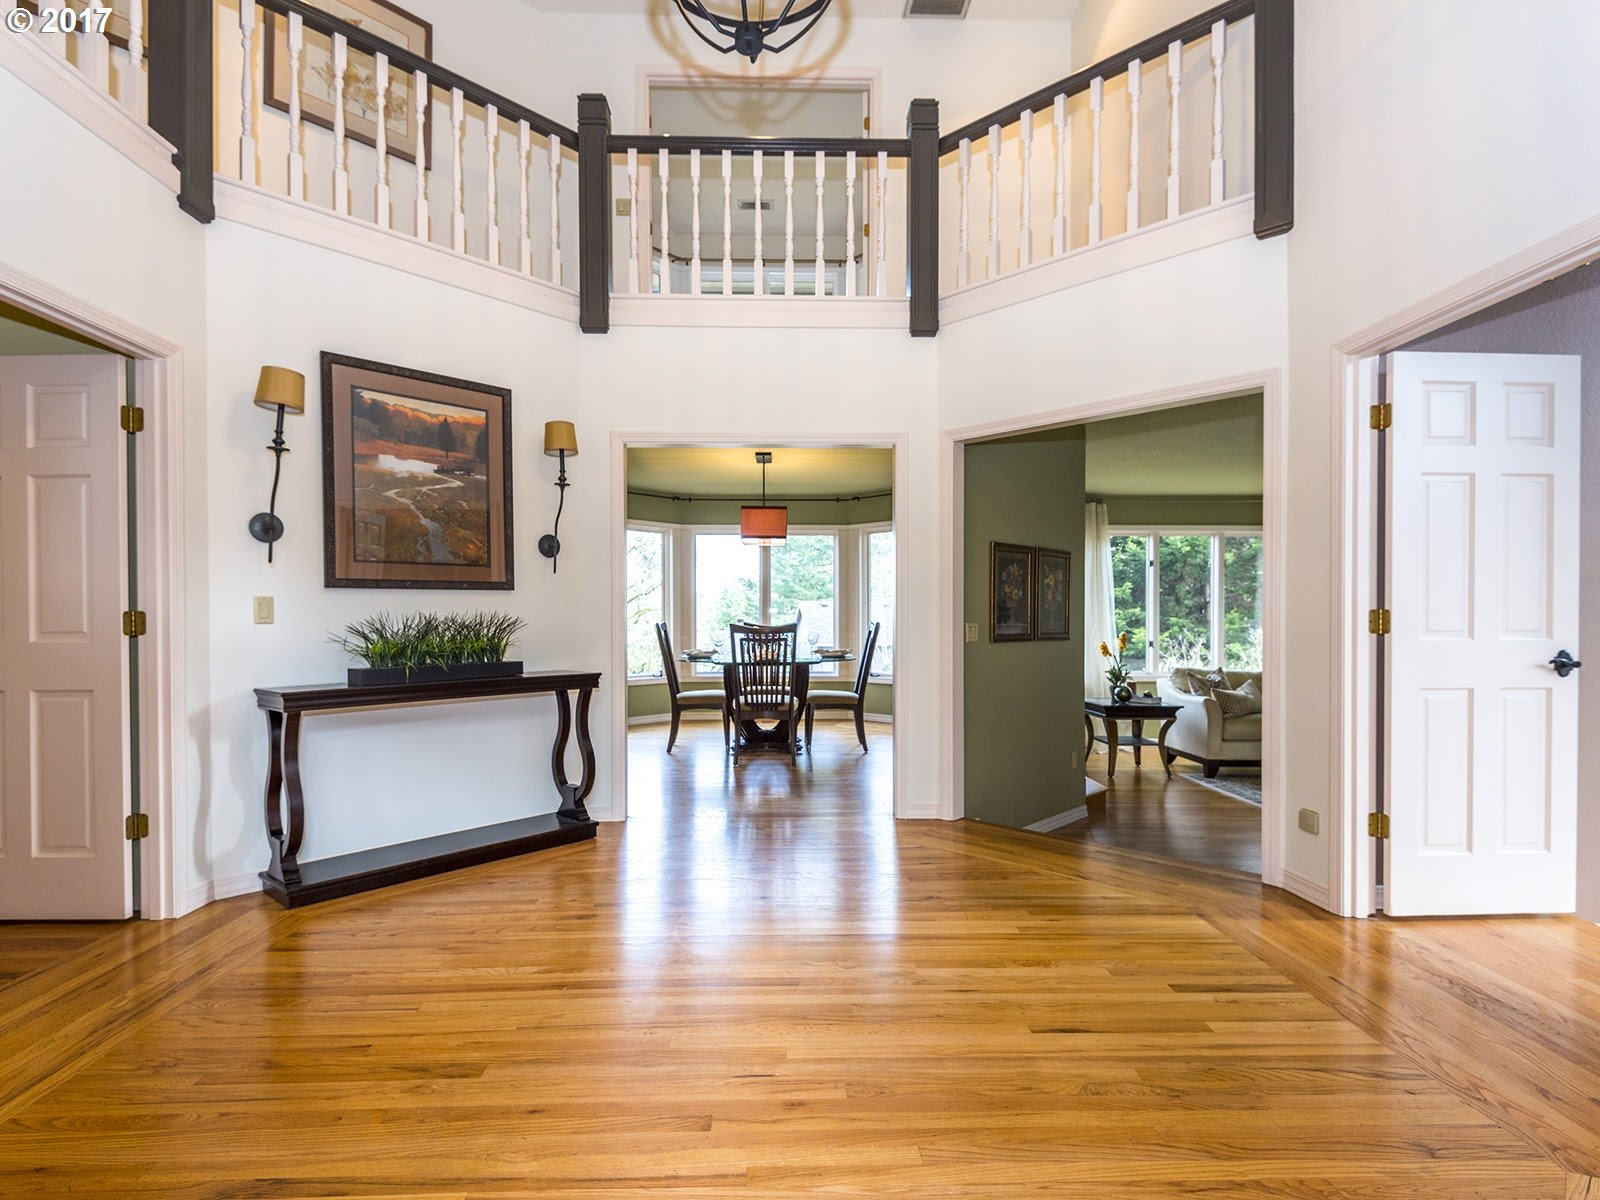 4988 sq. ft 5 bedrooms 3 bathrooms  House For Sale, Lake Oswego, OR